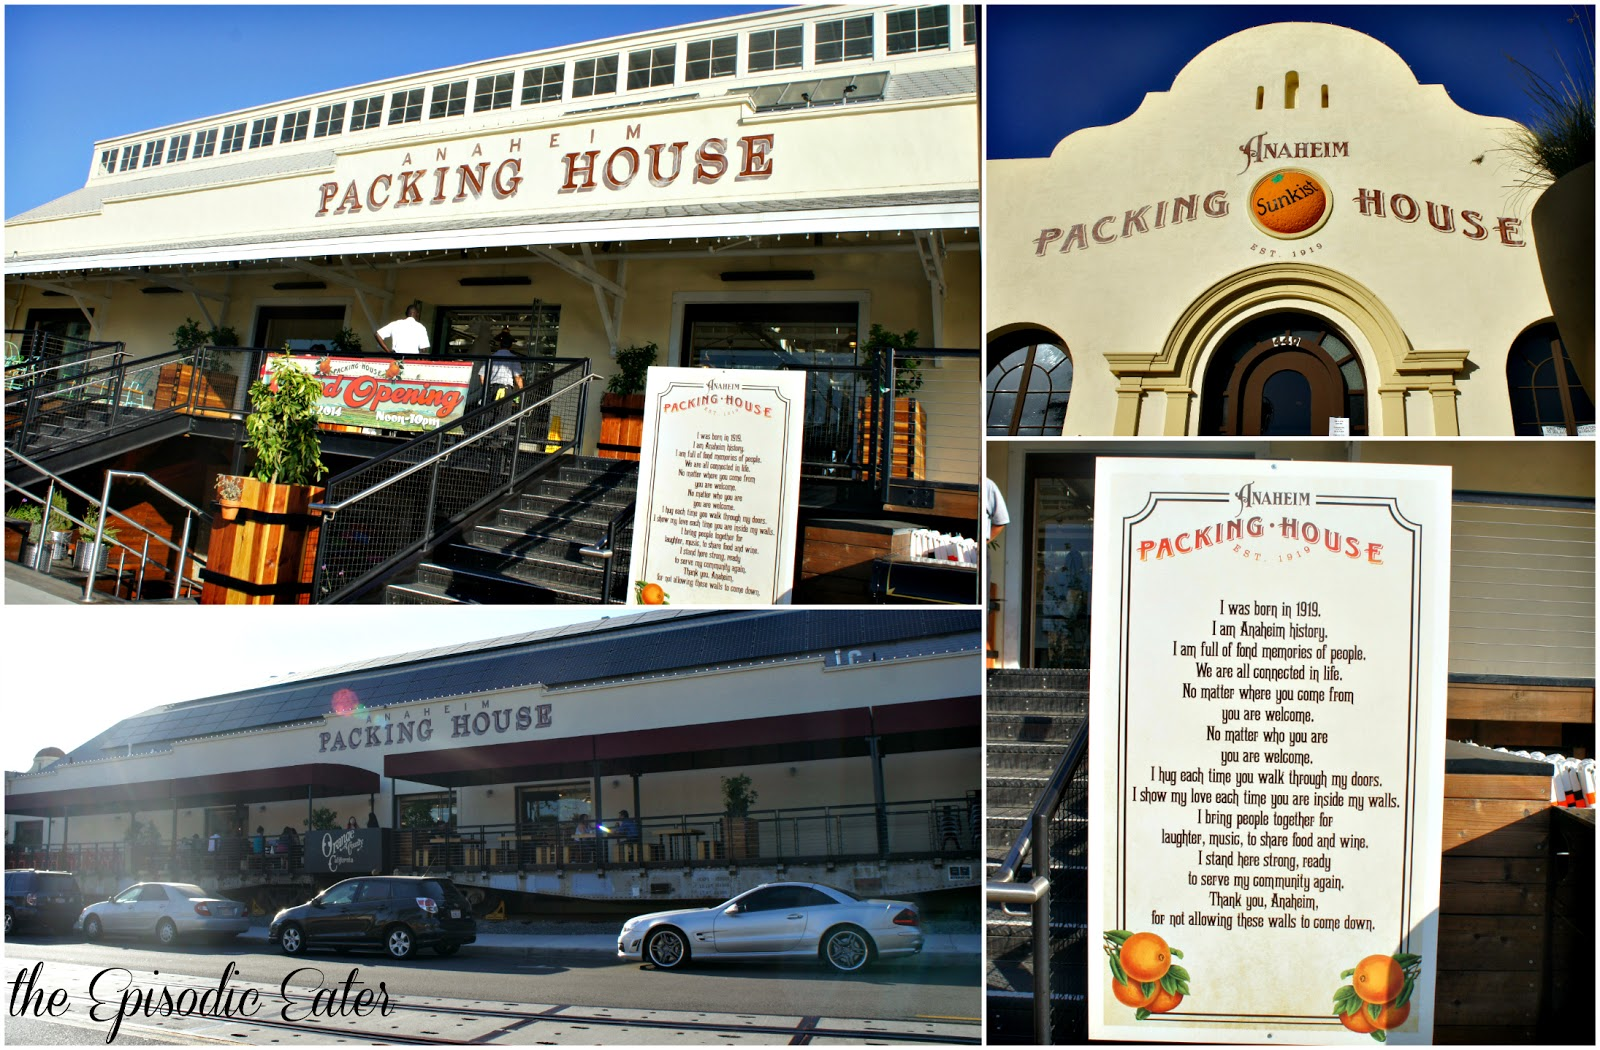 Anaheim Packing District (Anaheim, CA) On The Episodic Eater